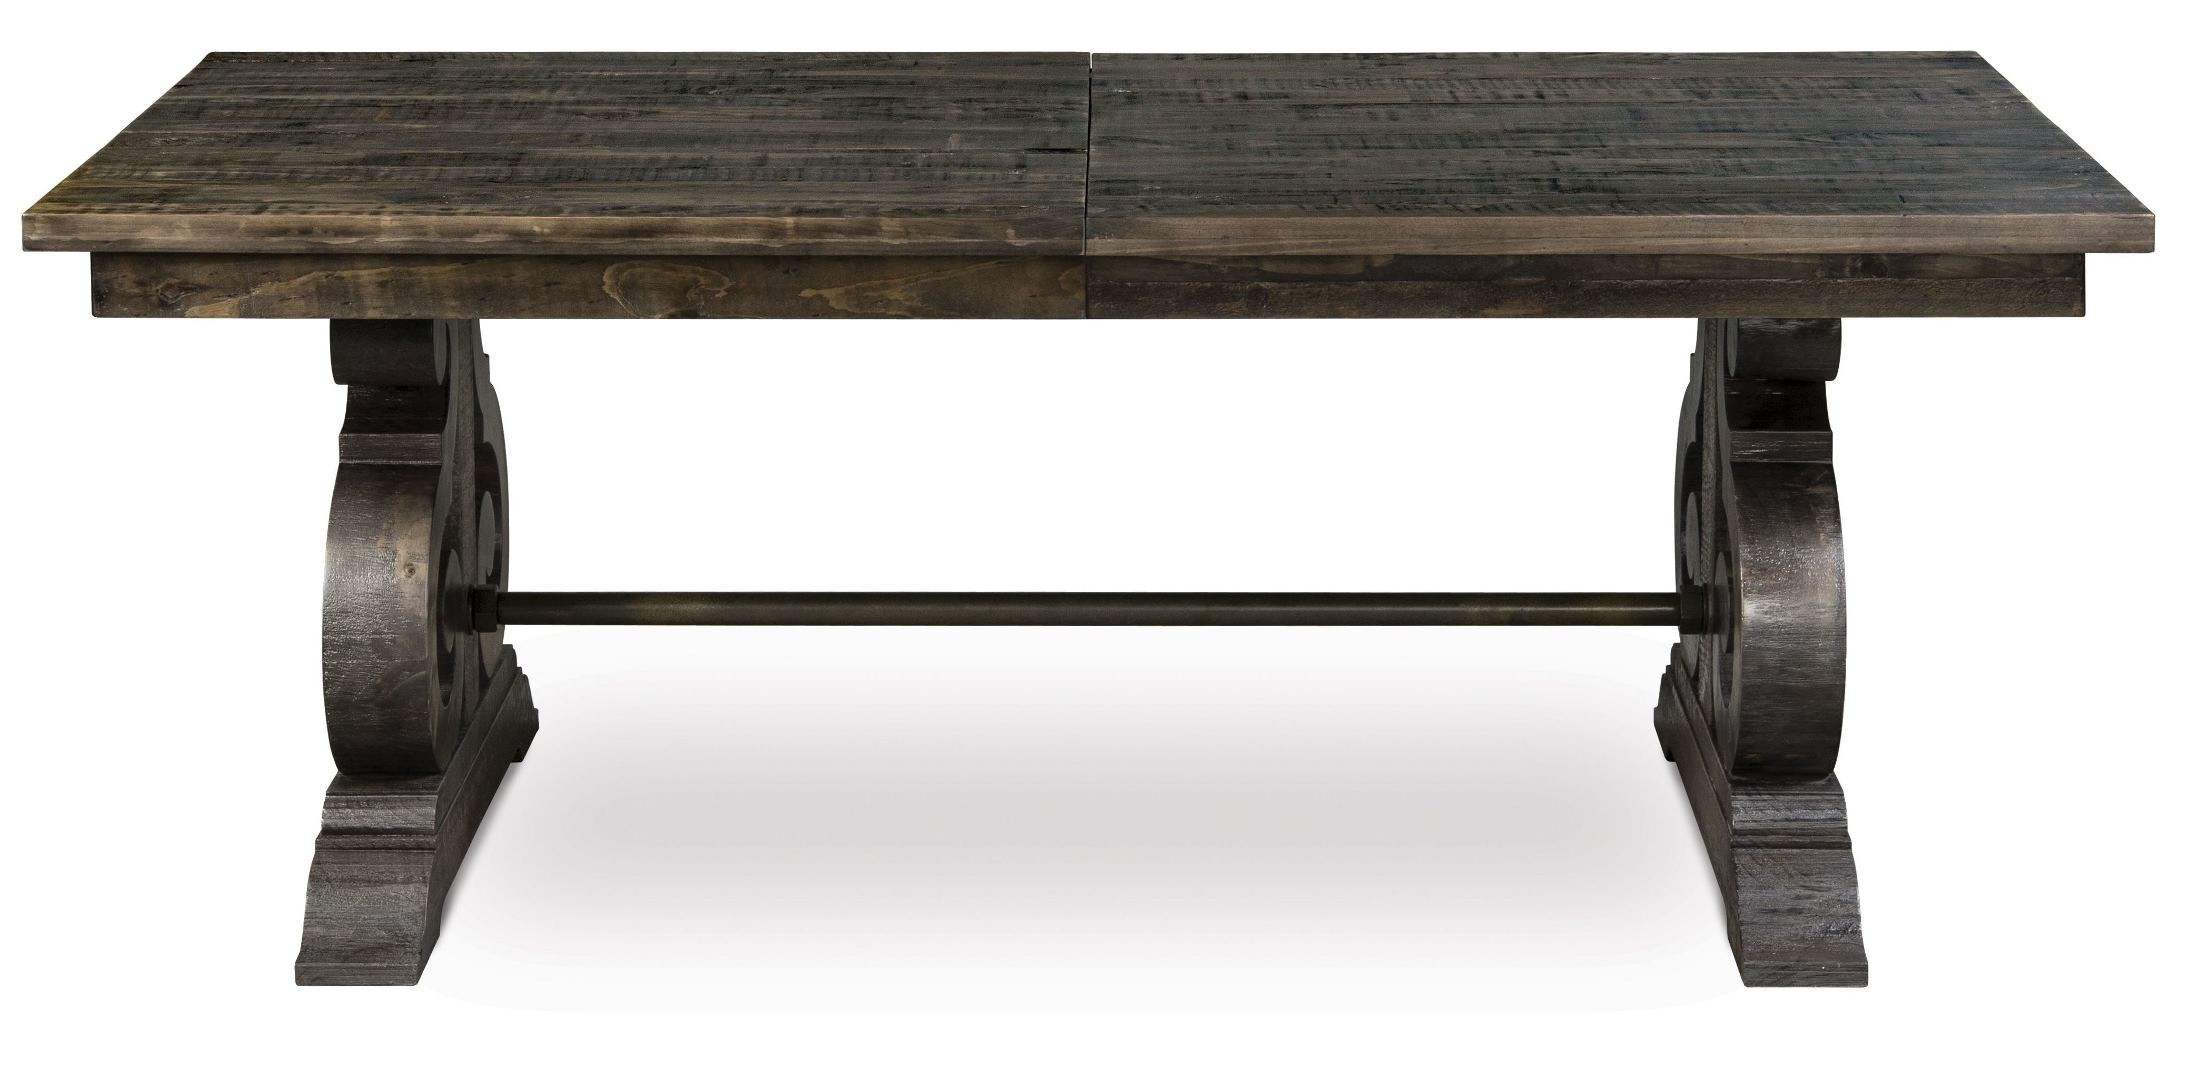 Bellamy Rectangular Dining Table from Magnussen Home D2491 20T